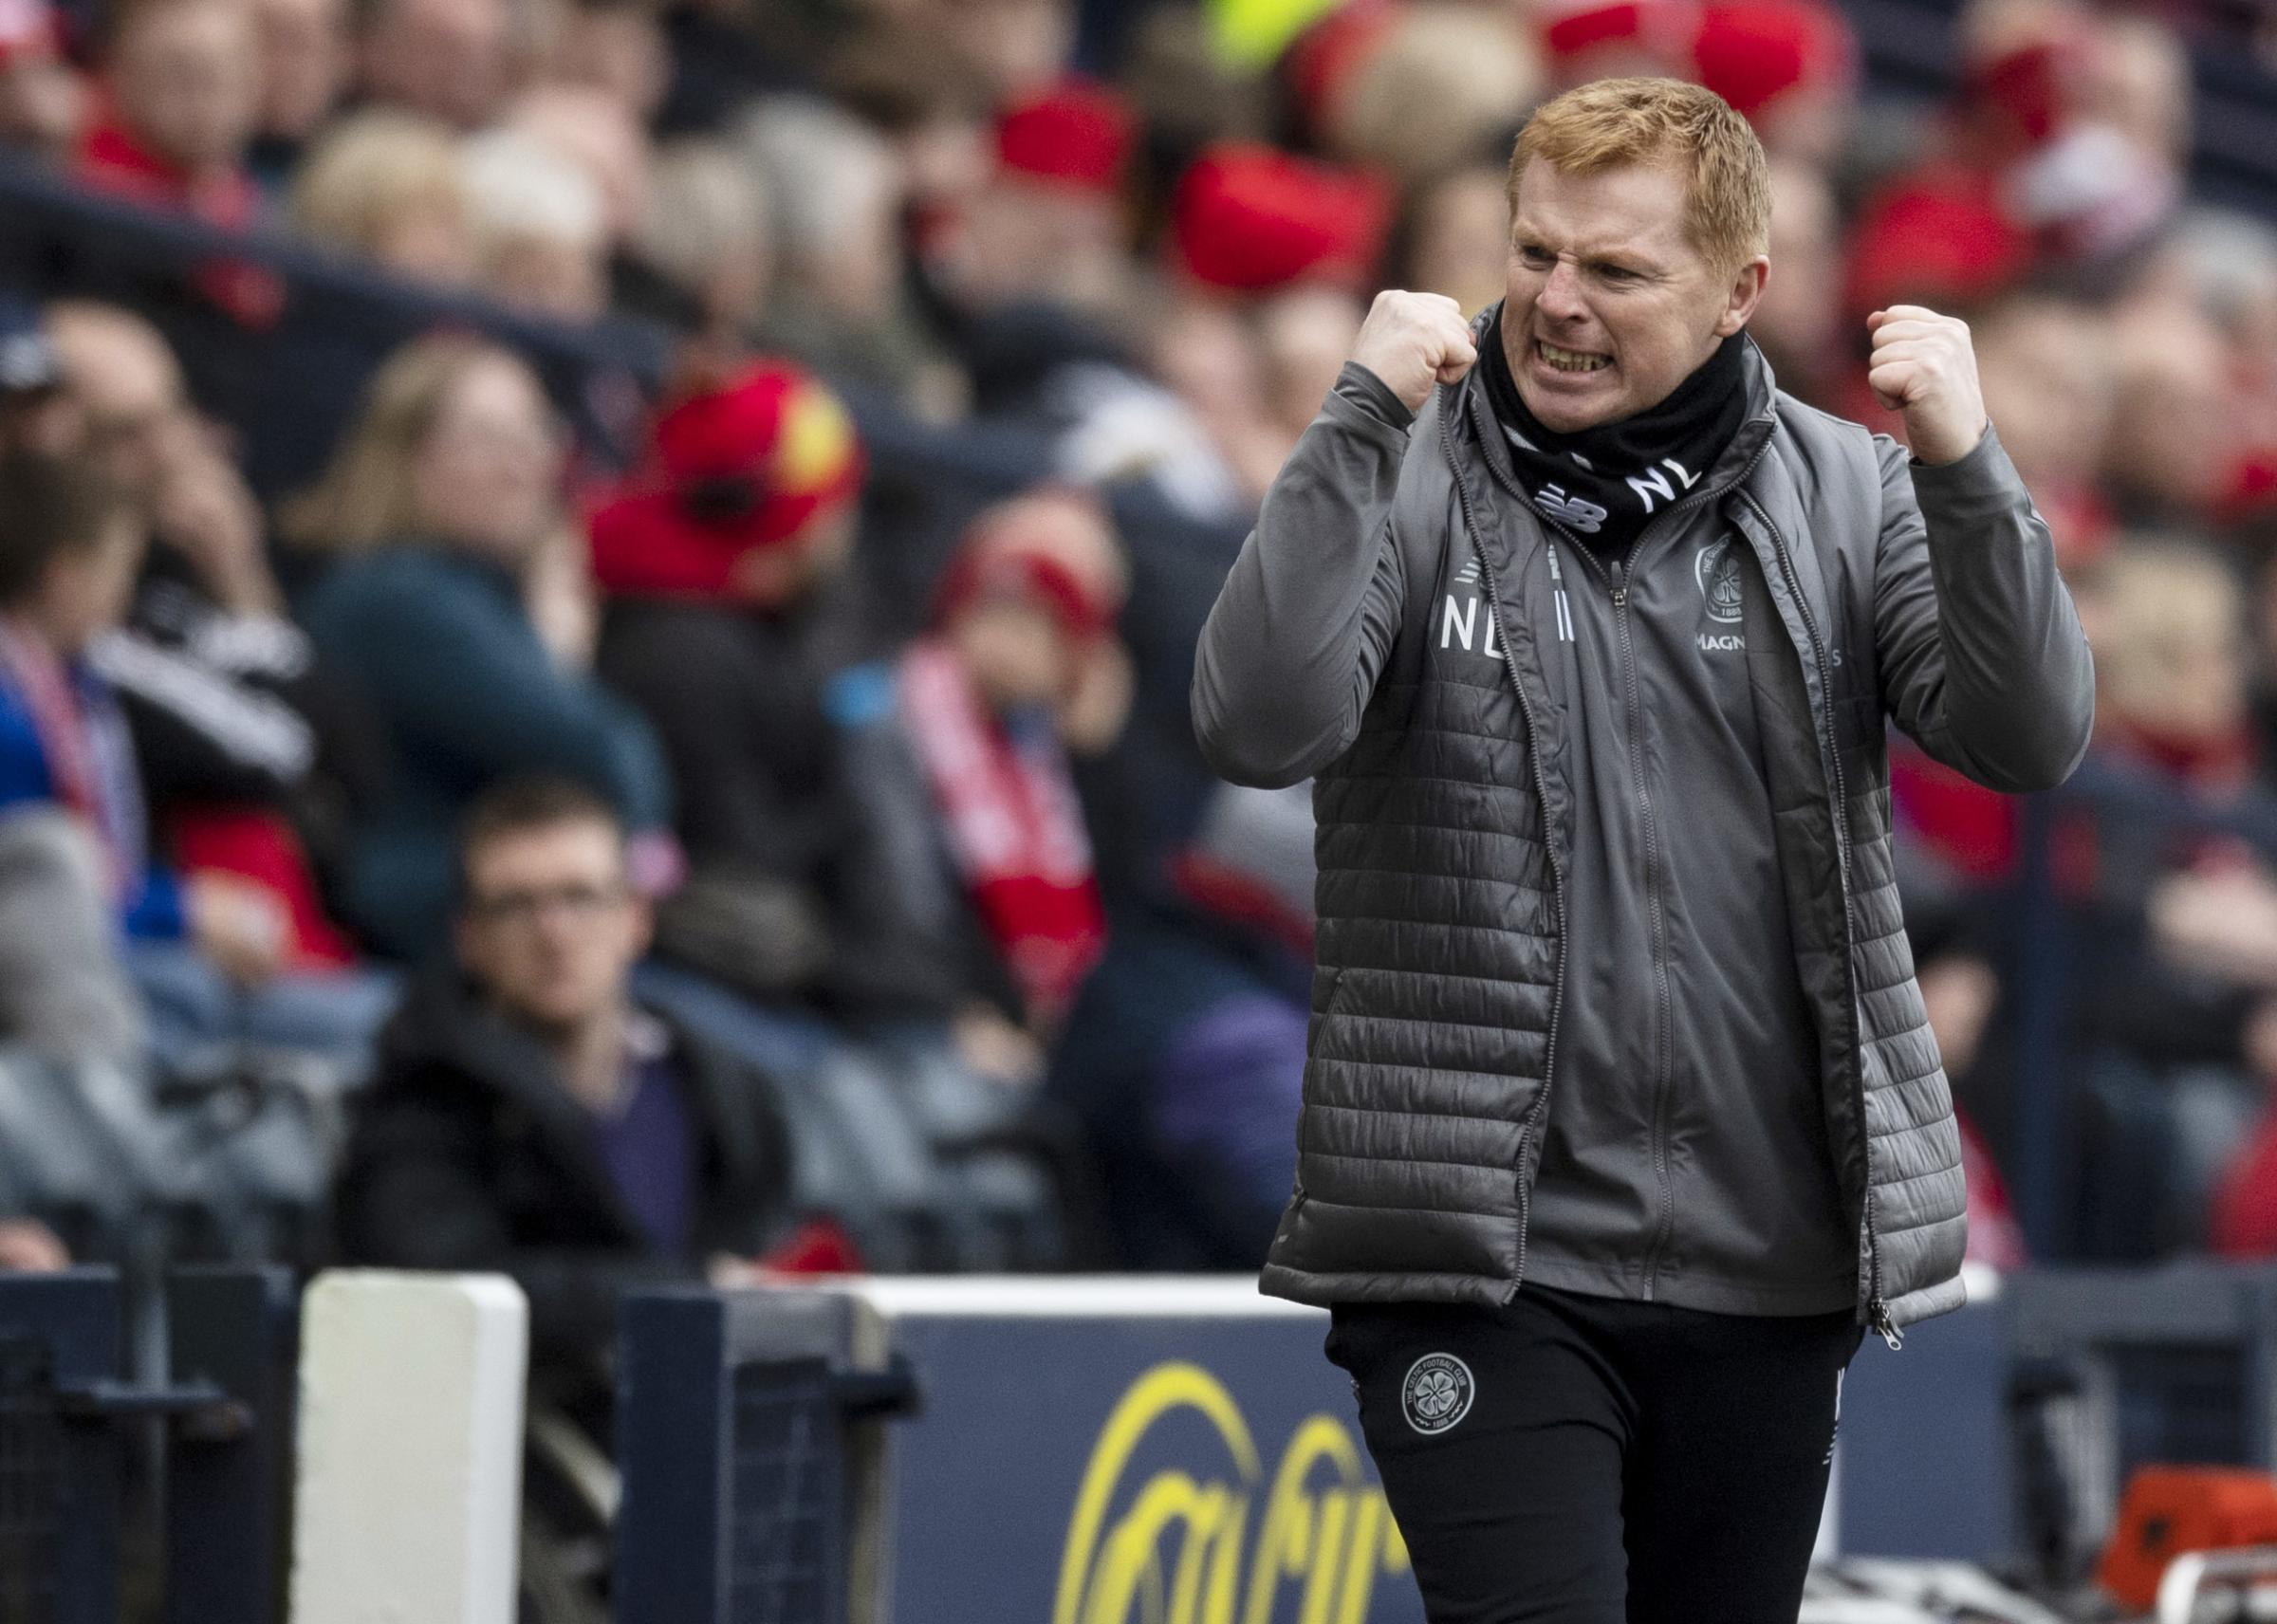 Celtic manager Neil Lennon celebrates his side's second goal against Aberdeen.